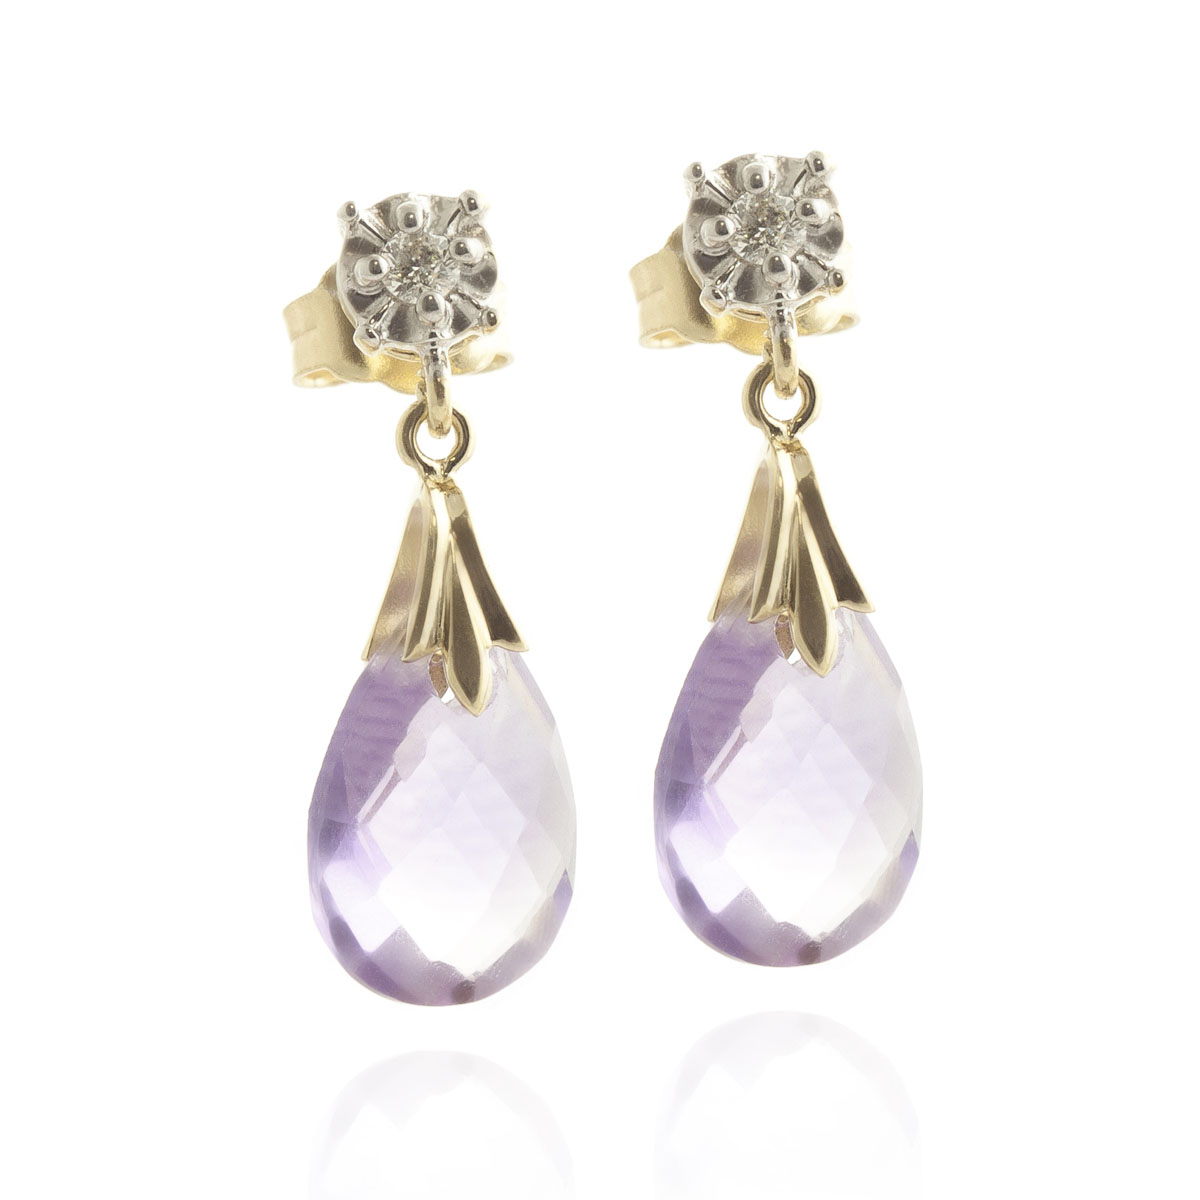 Amethyst & Diamond Comet Stud Earrings in 9ct Gold